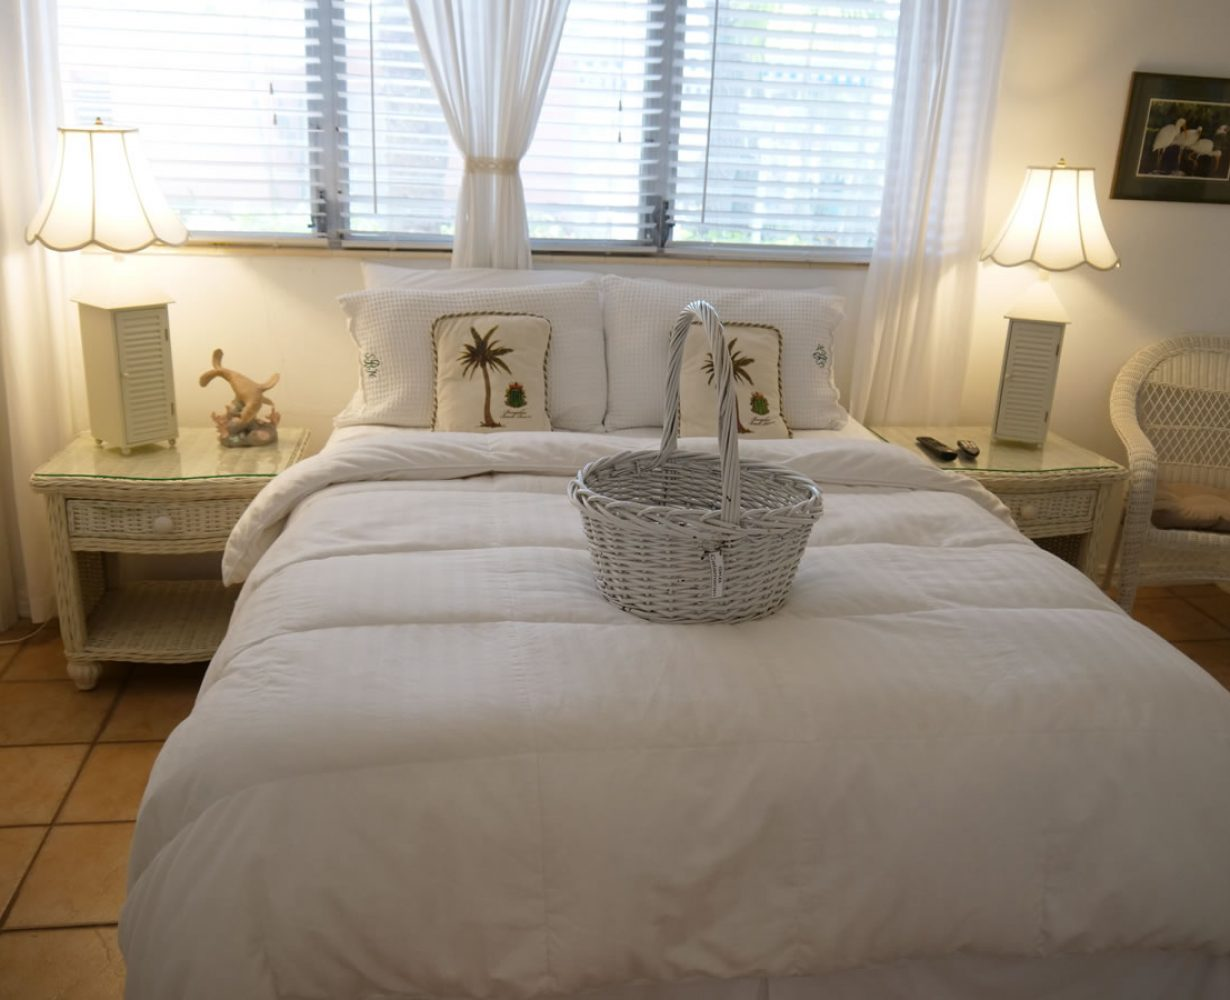 Bedroom straight view with basket on bed